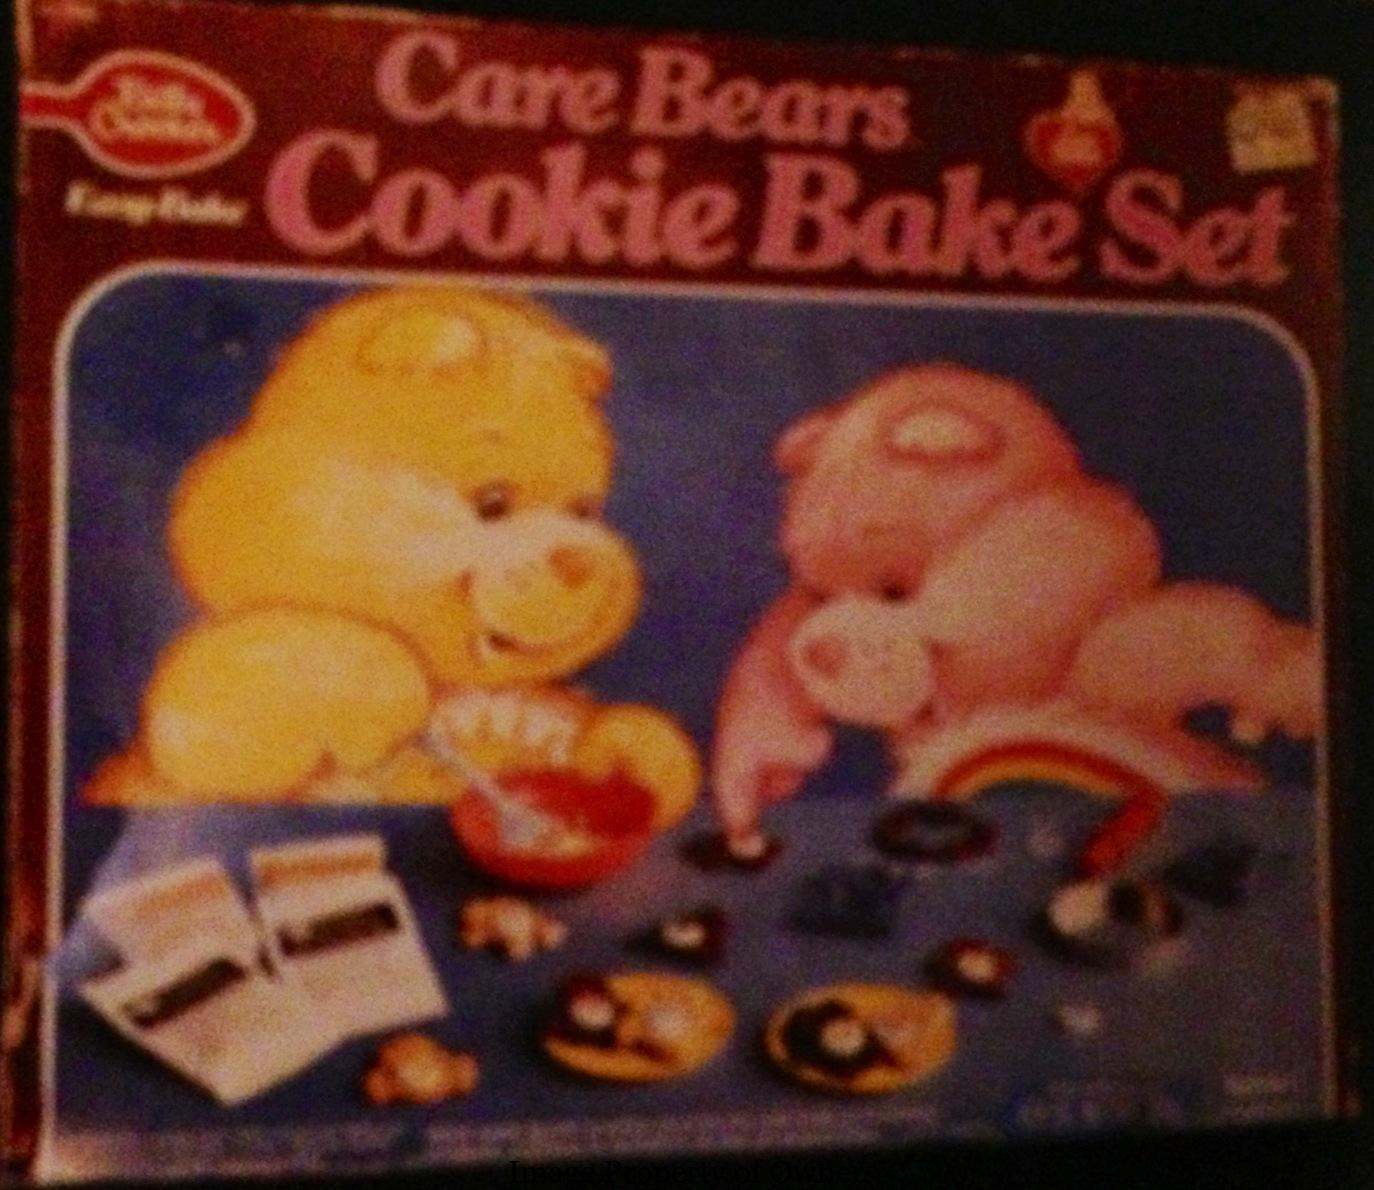 CB Cookie Bake Set BettyCrocker